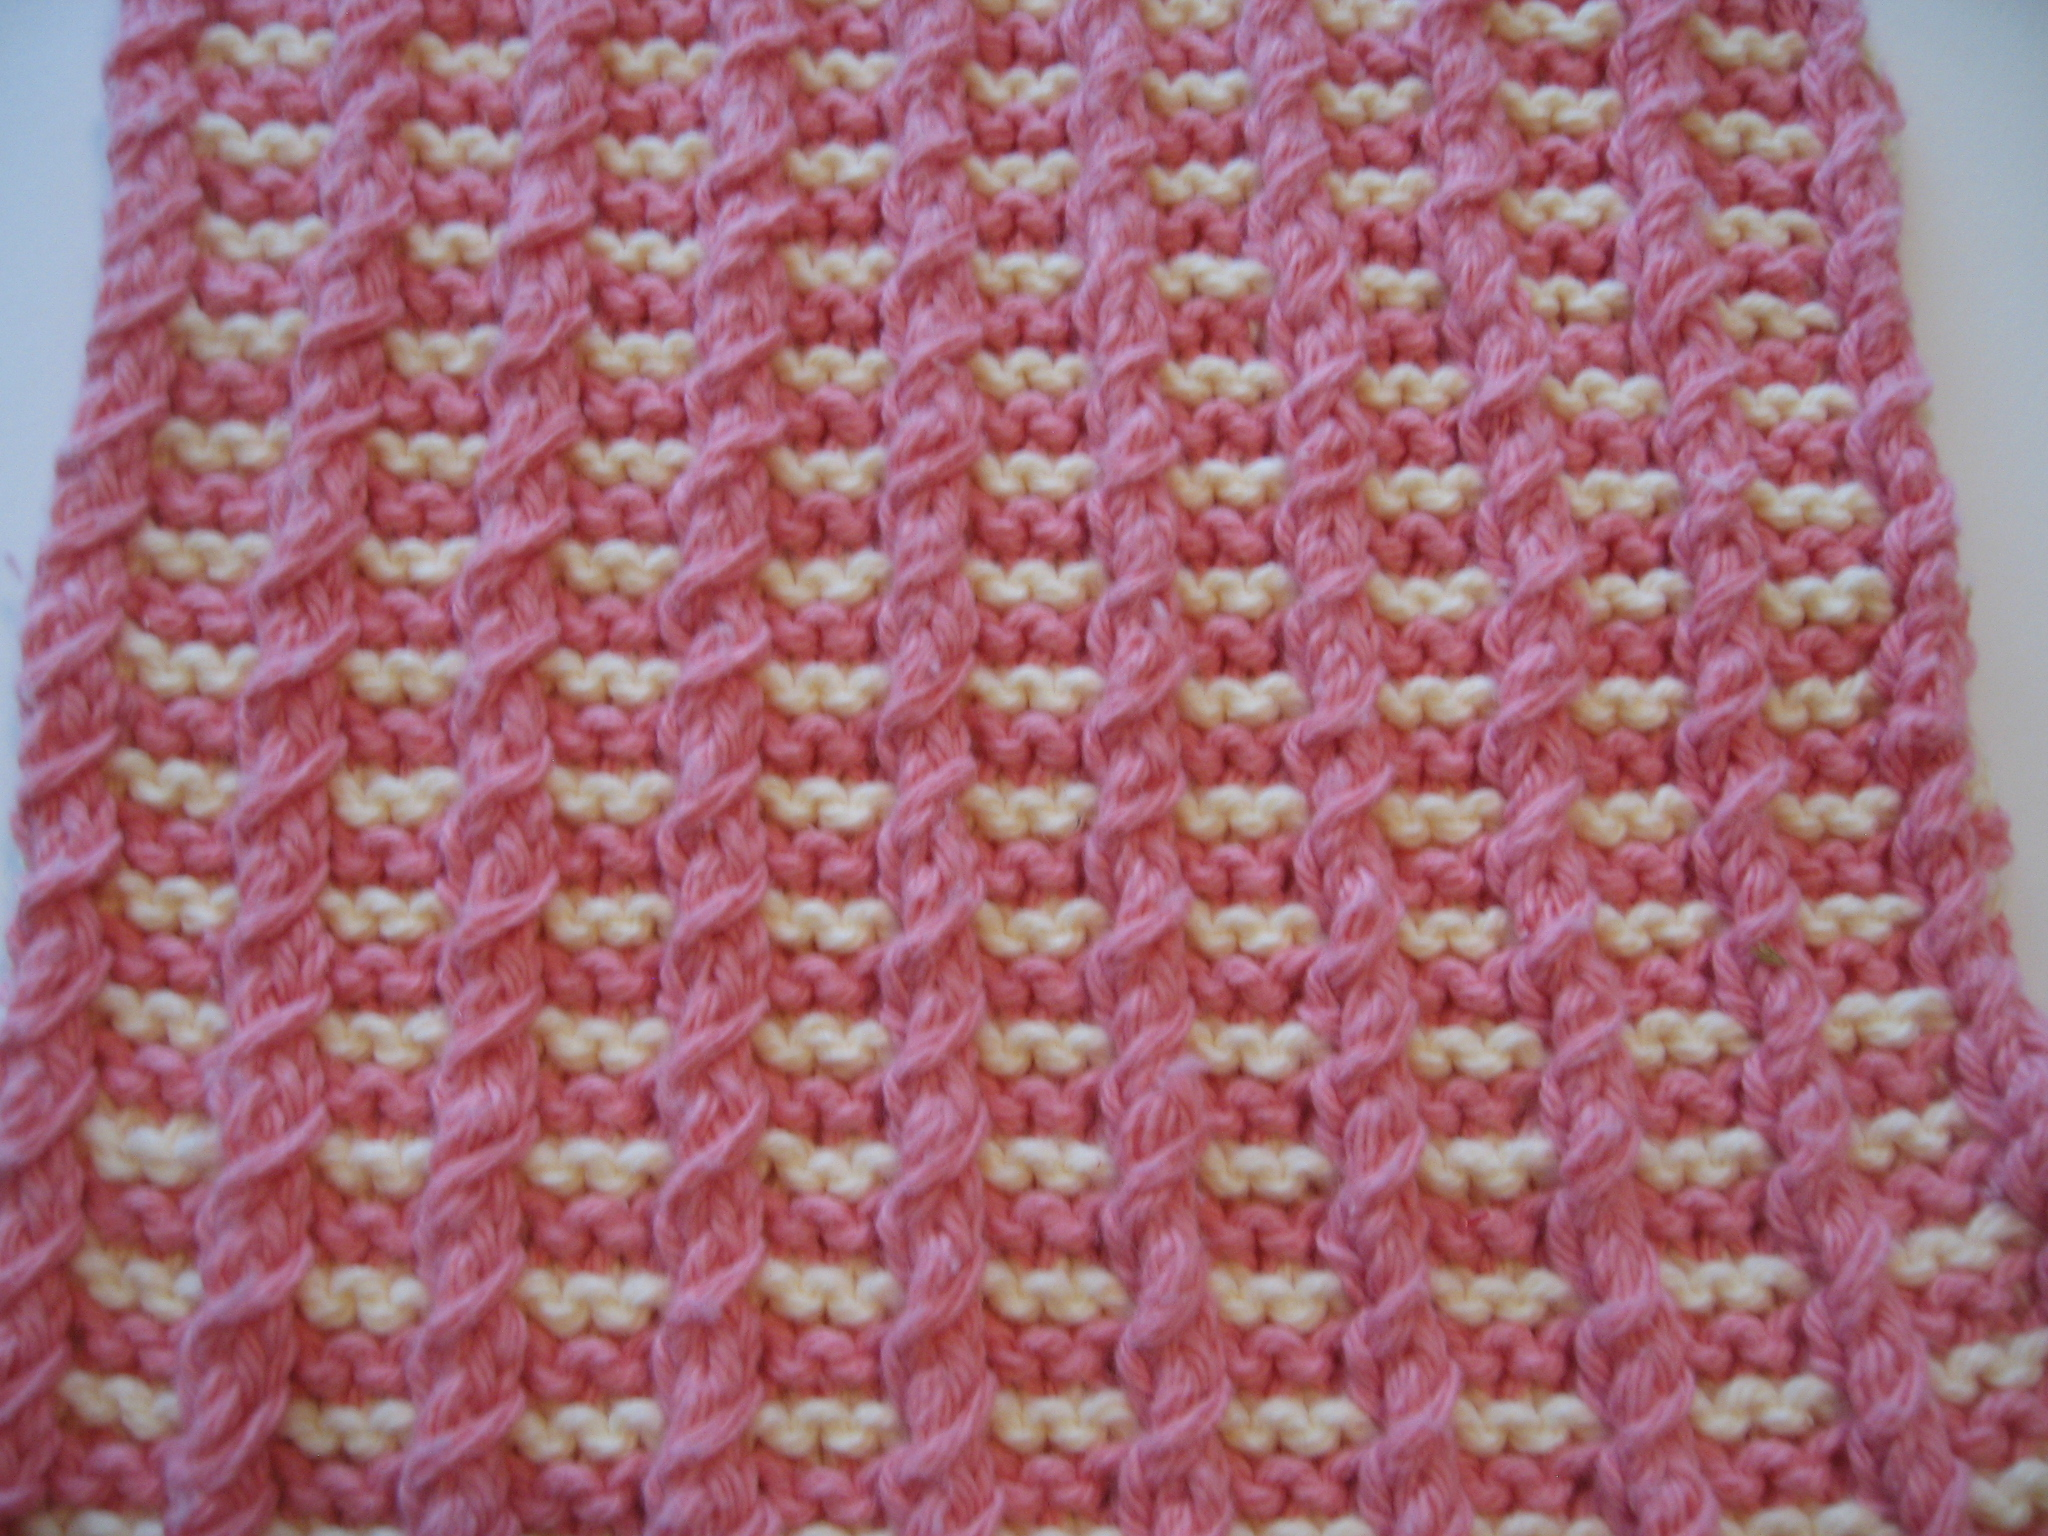 How To Increase The Number Of Stitches When Knitting : Dip stitch (knitting) videos